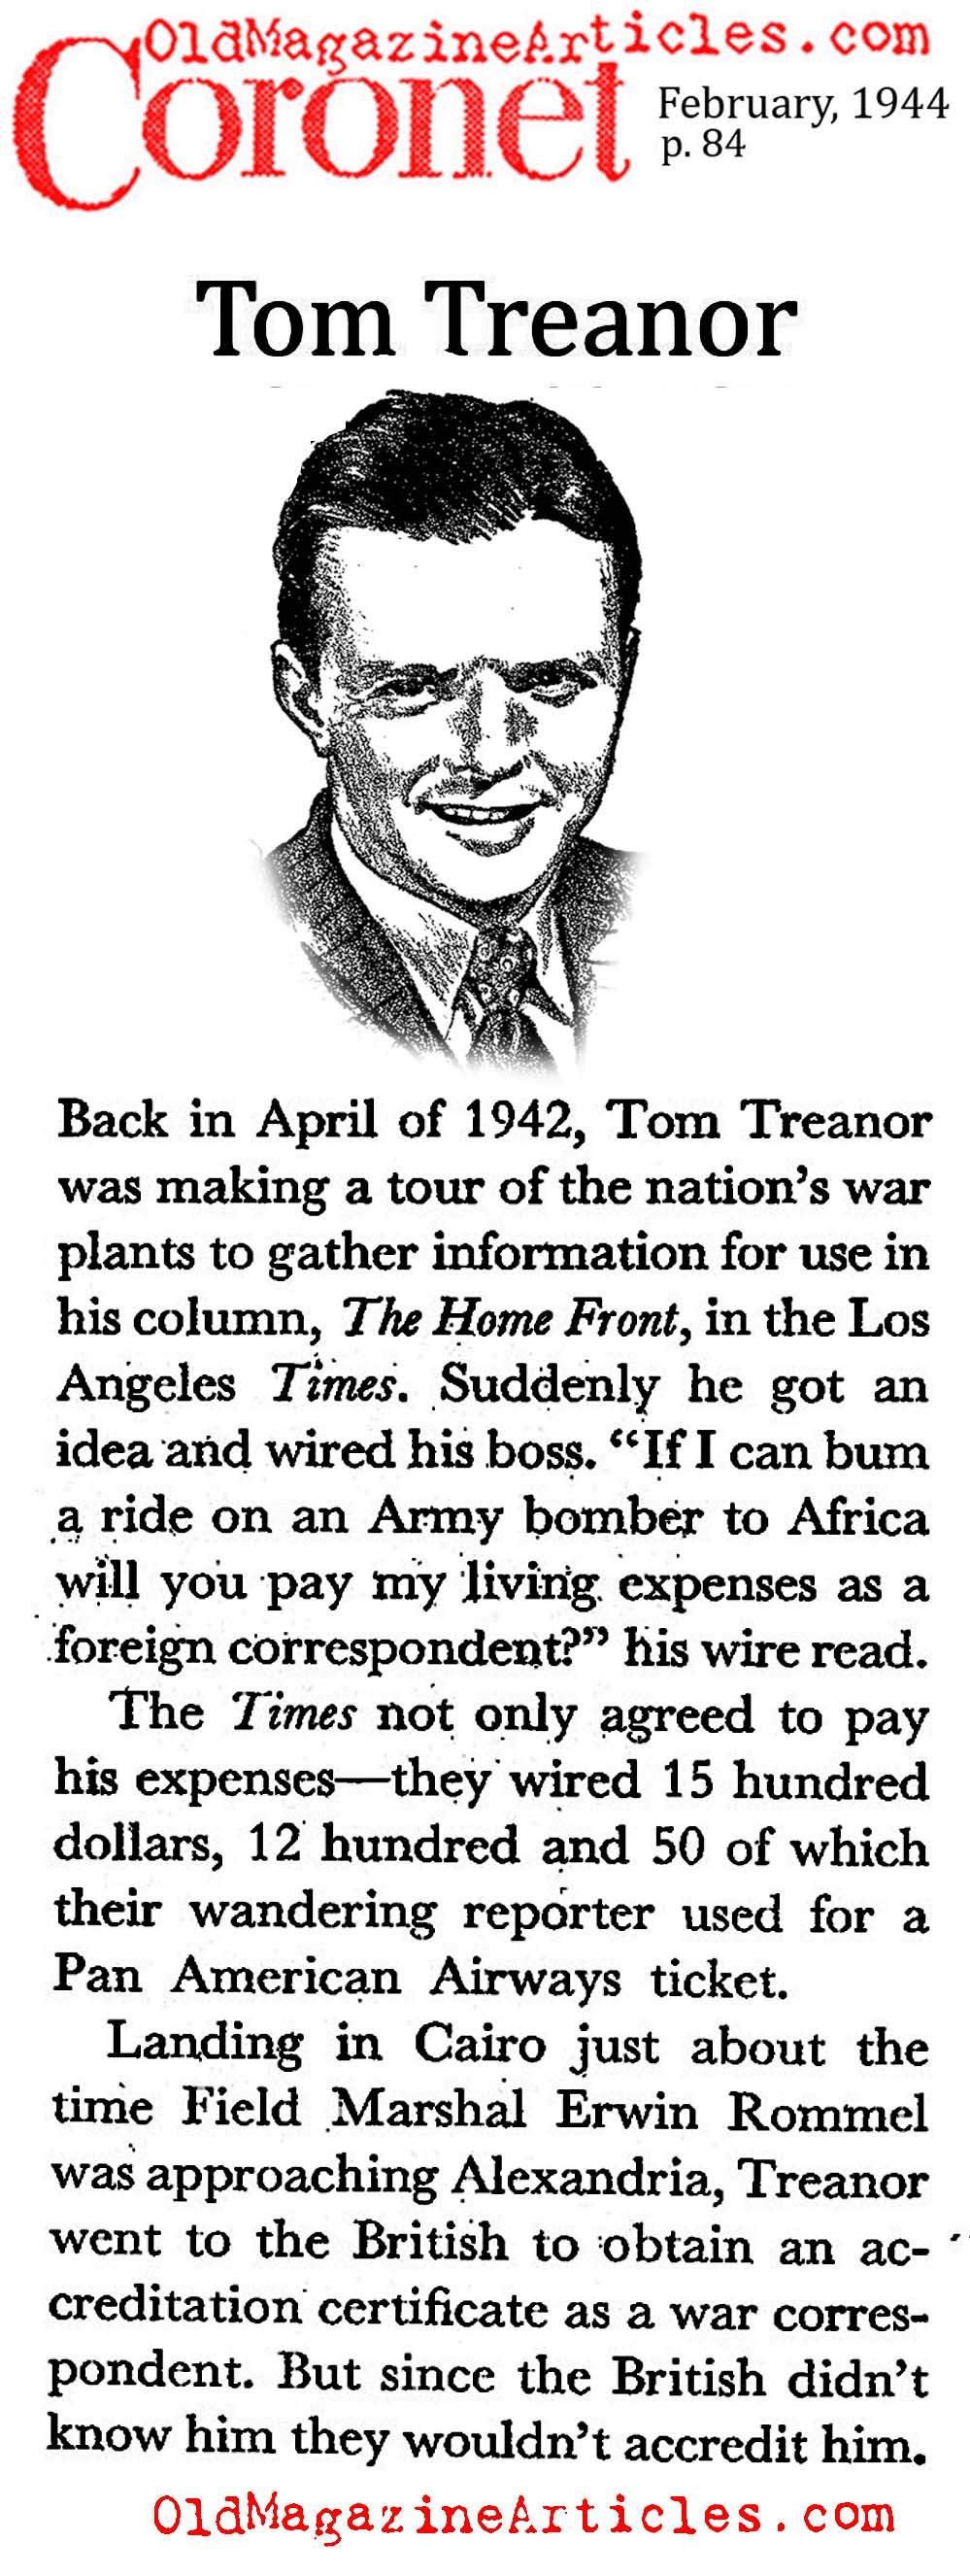 Tom Treanor of the L.A. Times (Coronet Magazine, 1944)